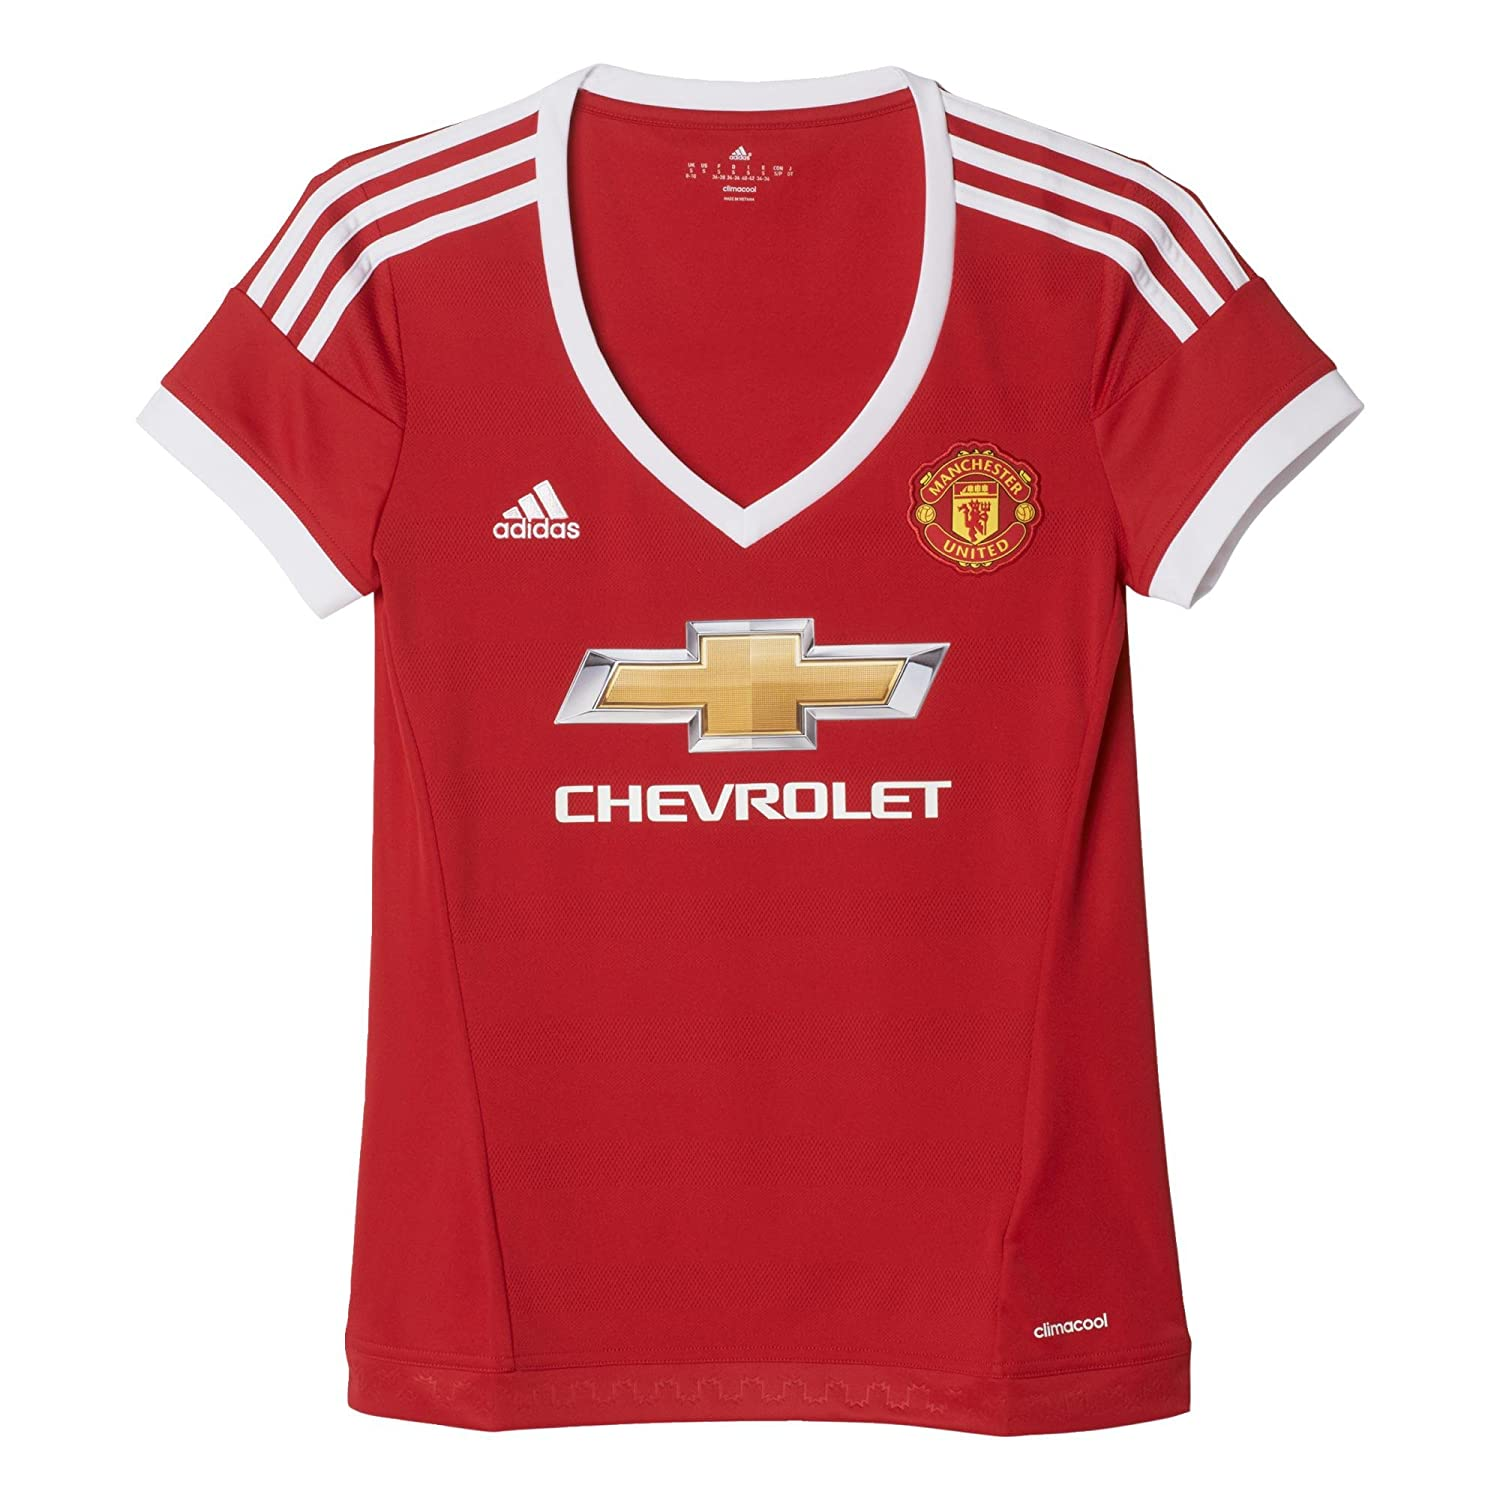 size 40 c6042 63867 adidas Women's Short-Sleeved Manchester United Replica Home Shirt